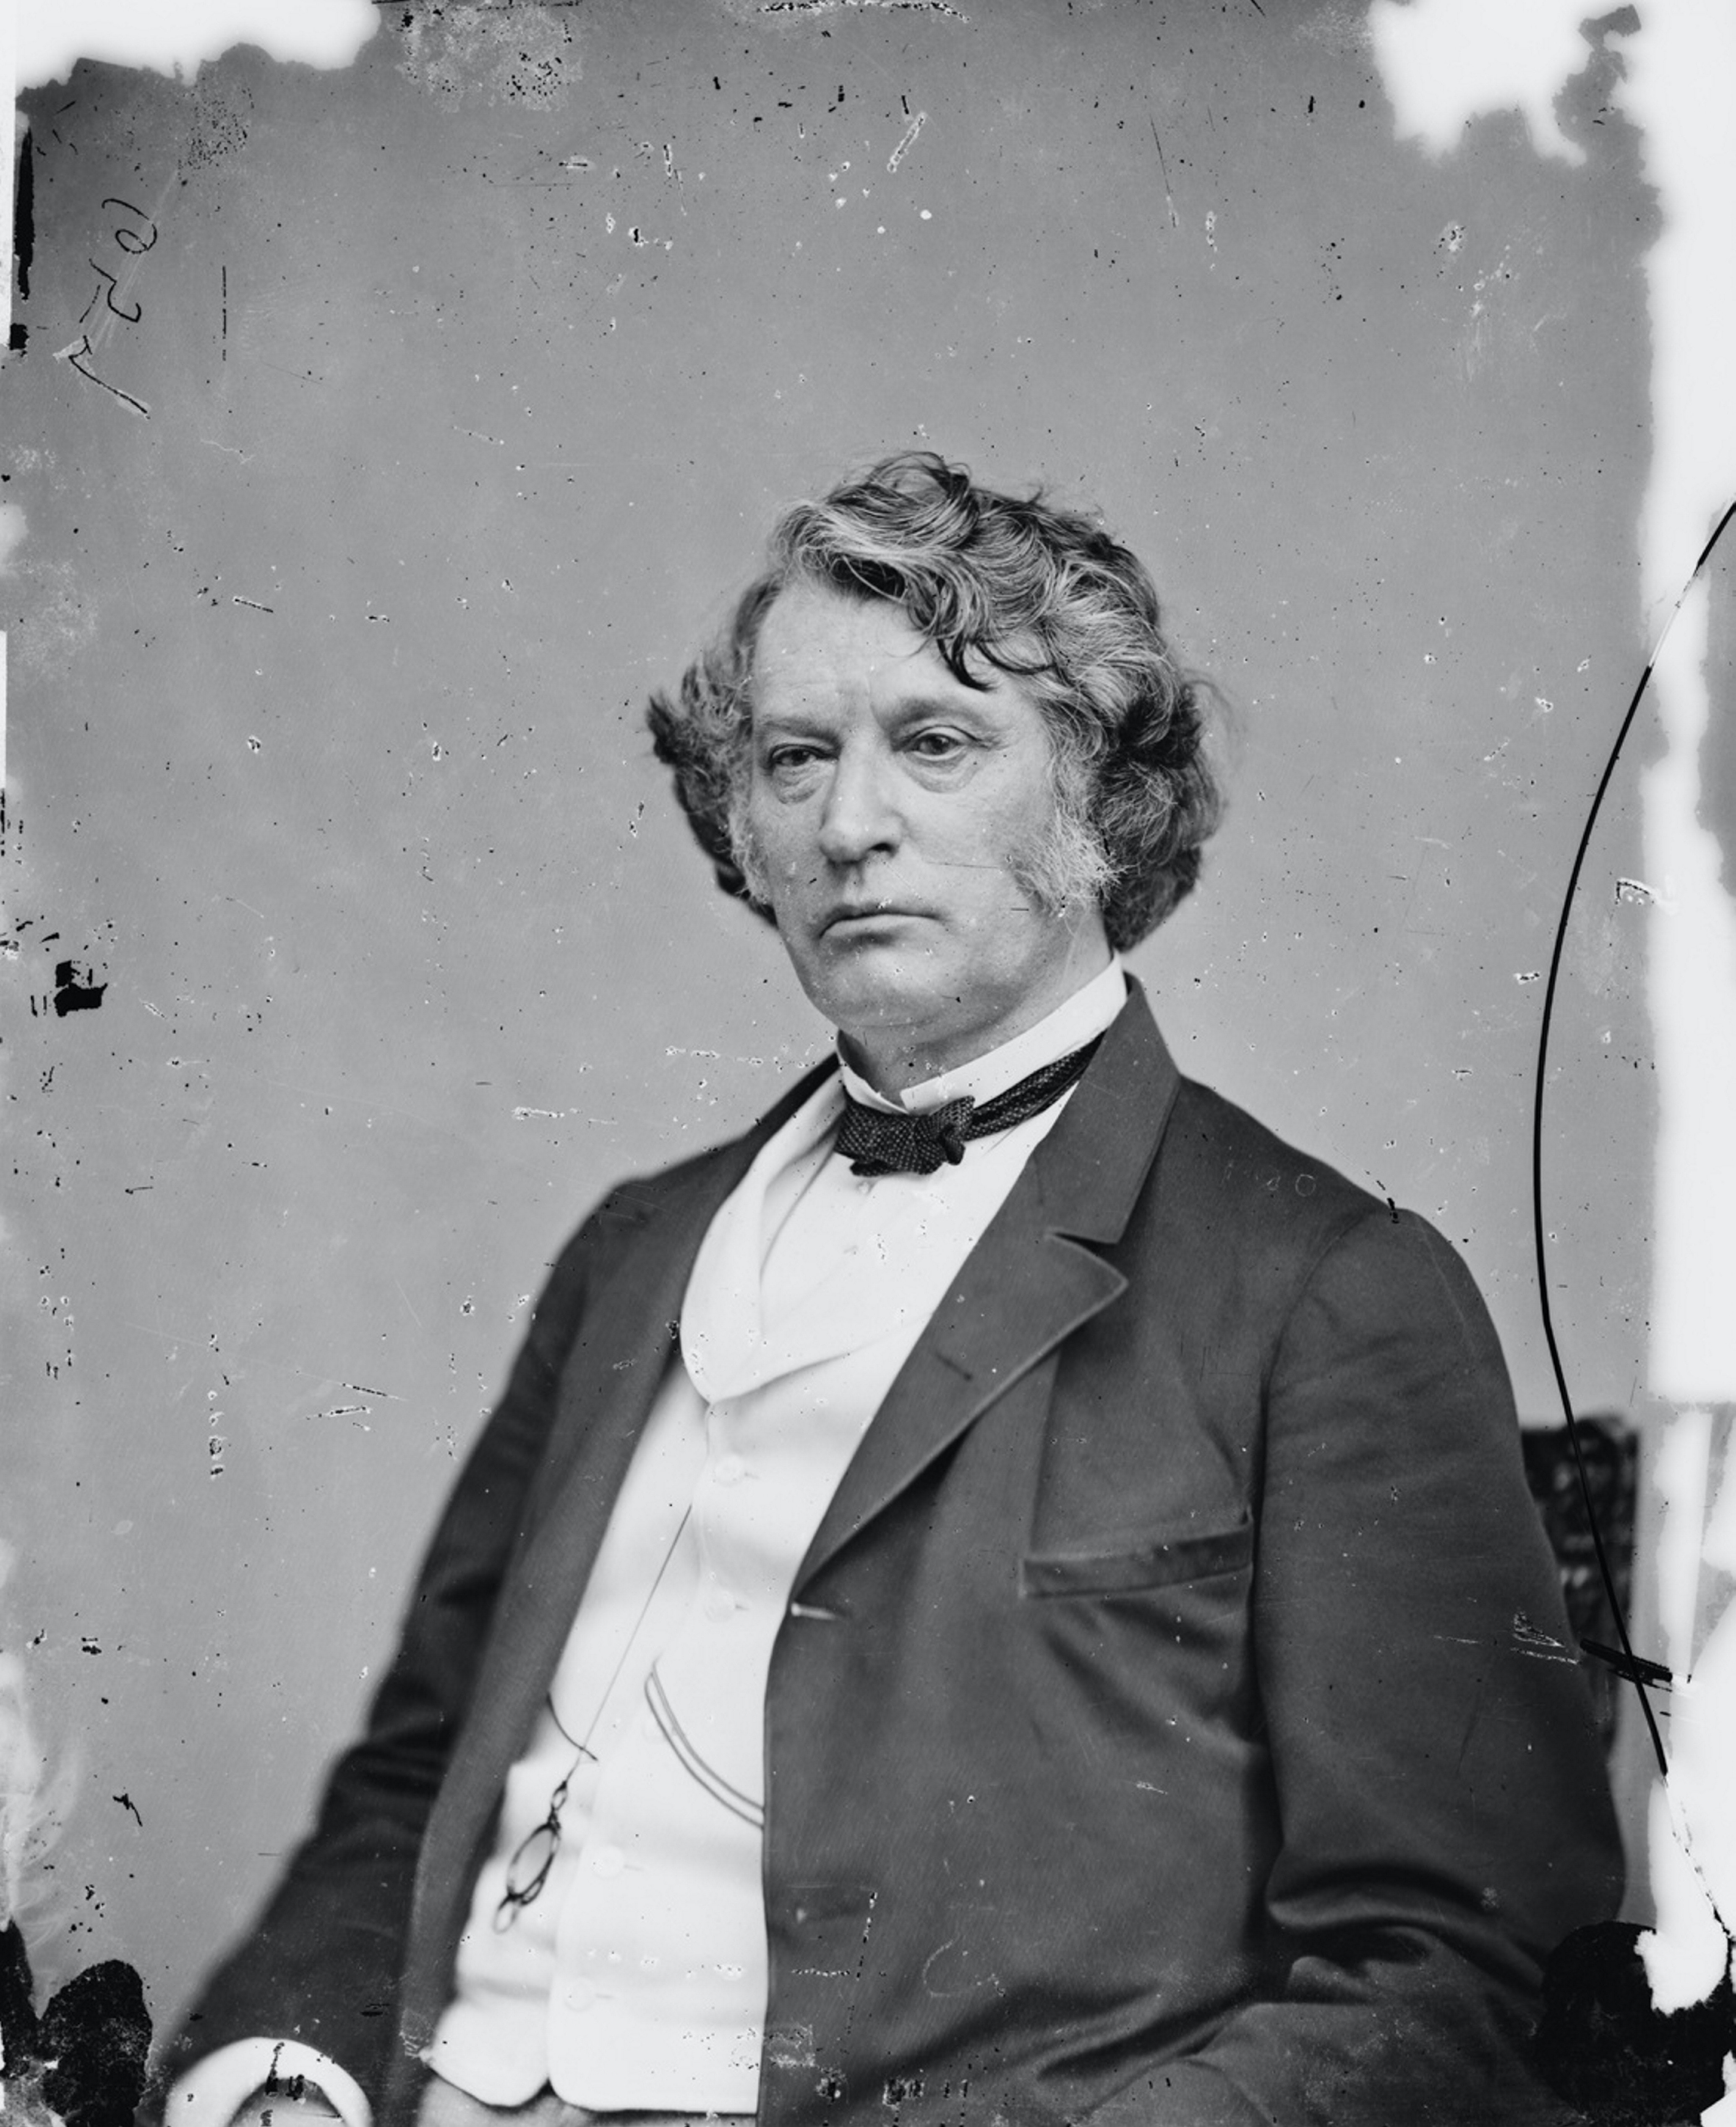 Senator Charles Sumner, c. 1861. (Photo by: Universal History Archive/Universal Images Group via Getty Images)